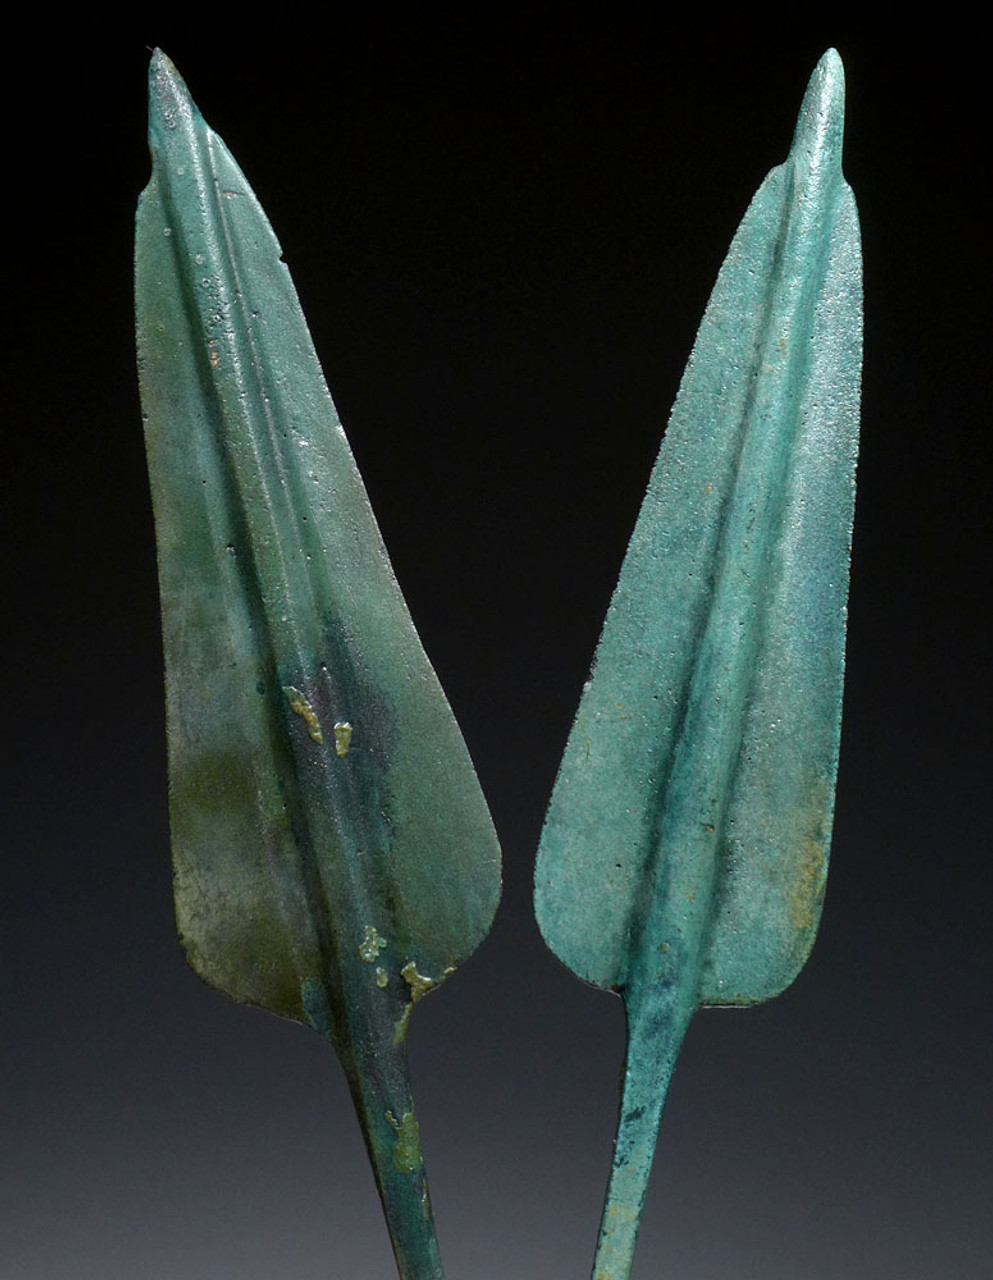 TWO CHOICE ANCIENT ARMOR-PIERCING JAVELIN SPEARHEADS FROM THE LURISTAN CULTURE *NEPC013